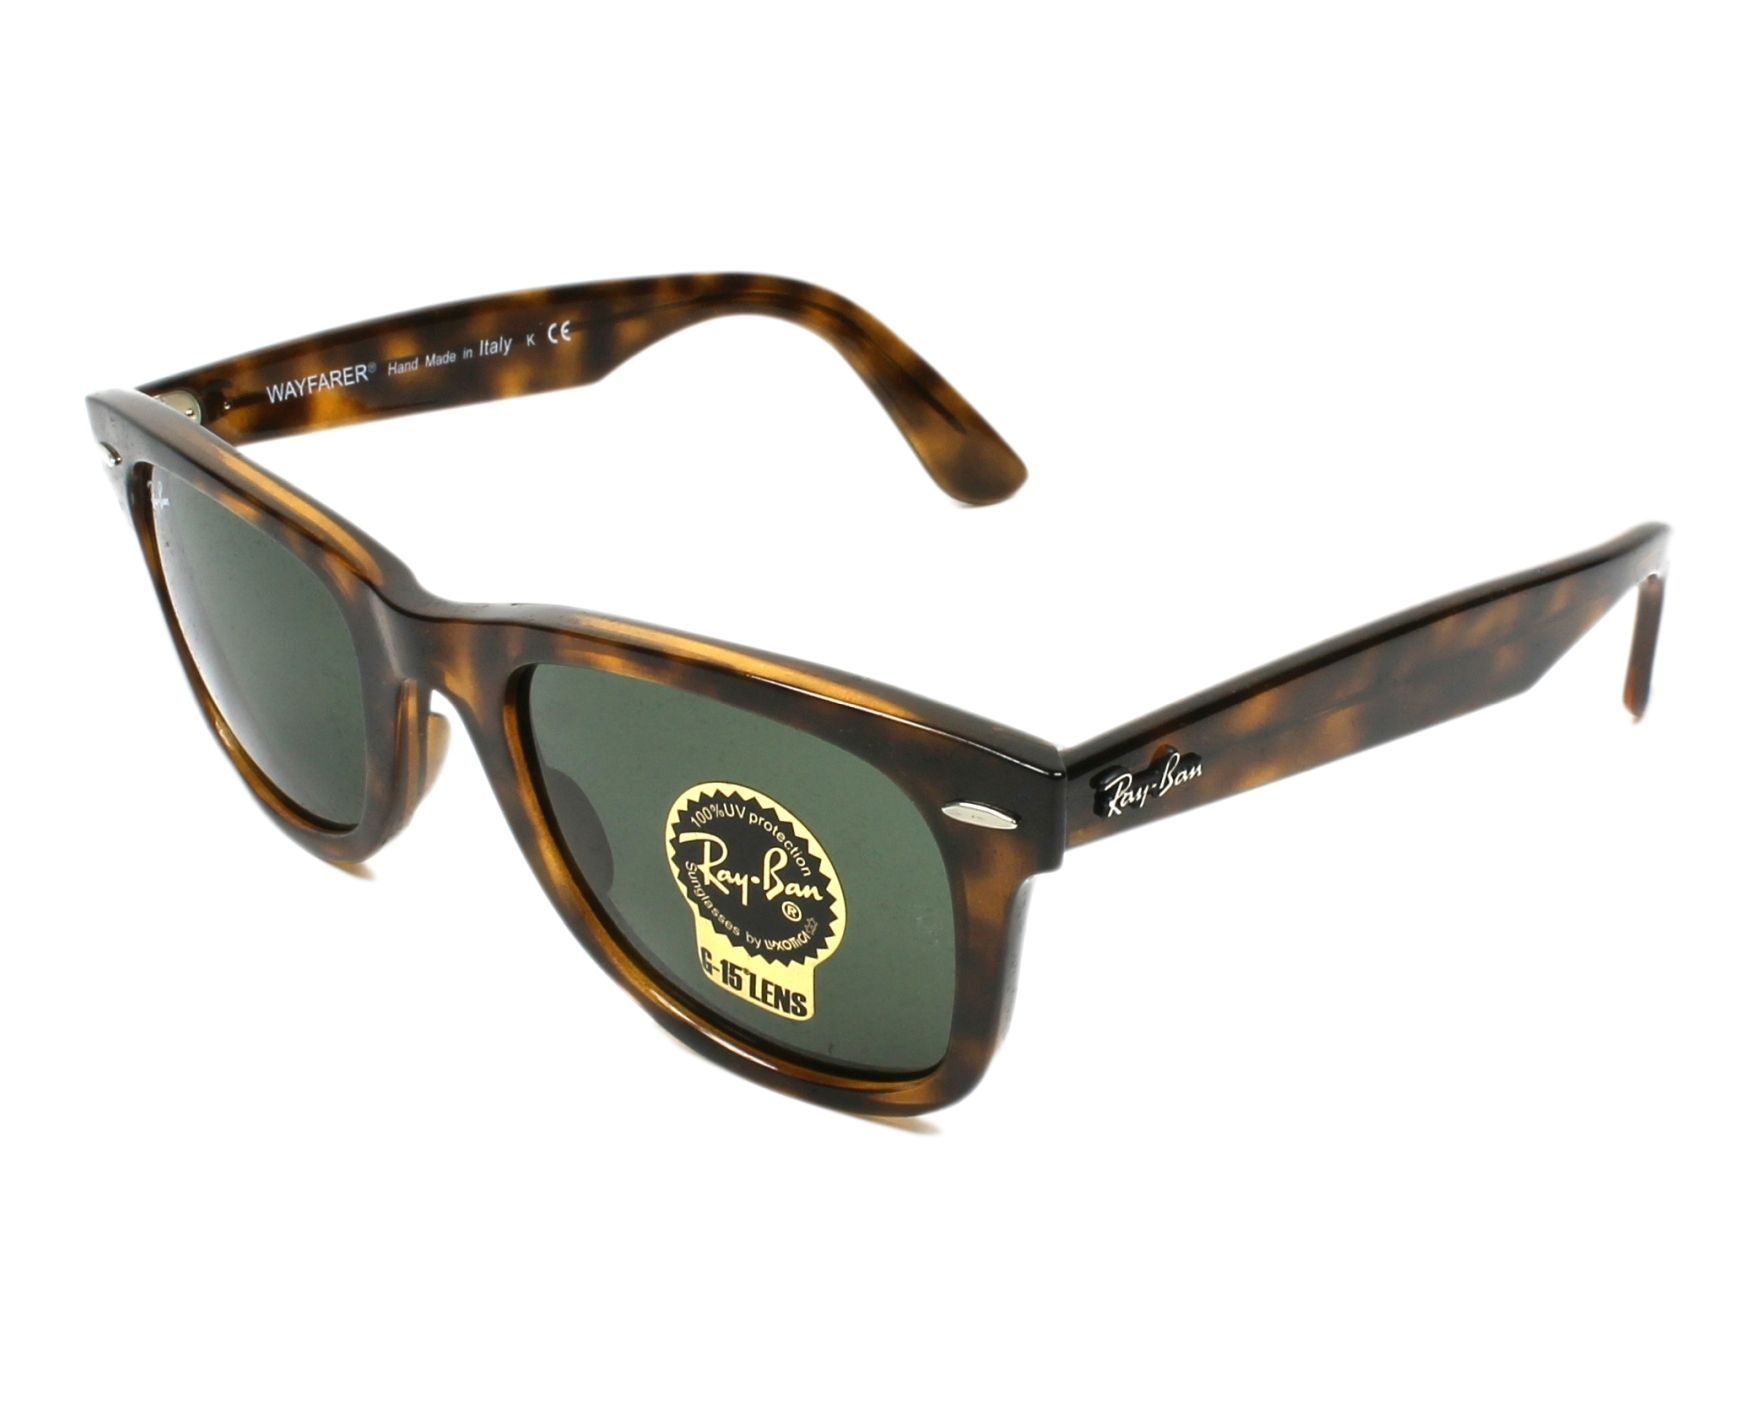 0bb2d7a729 Sunglasses Ray-Ban RB-4340 710 50-22 Havana profile view